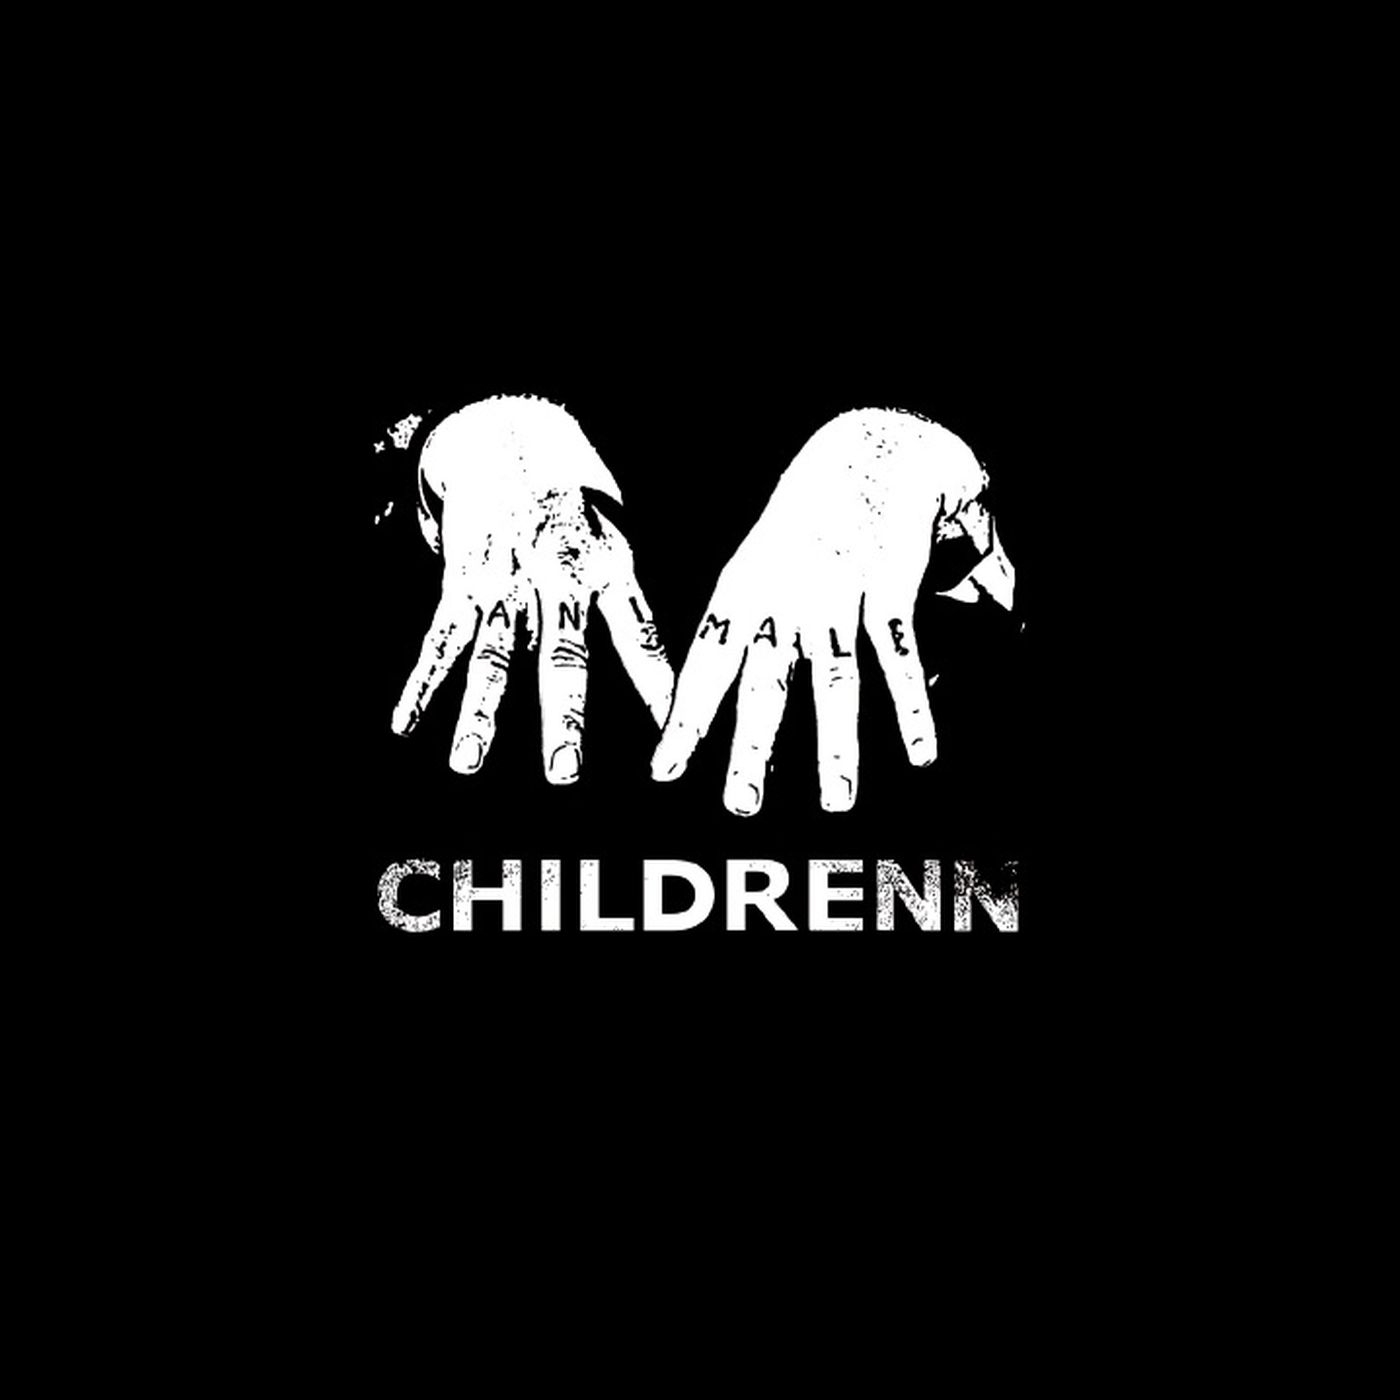 CHILDRENN - Annimale